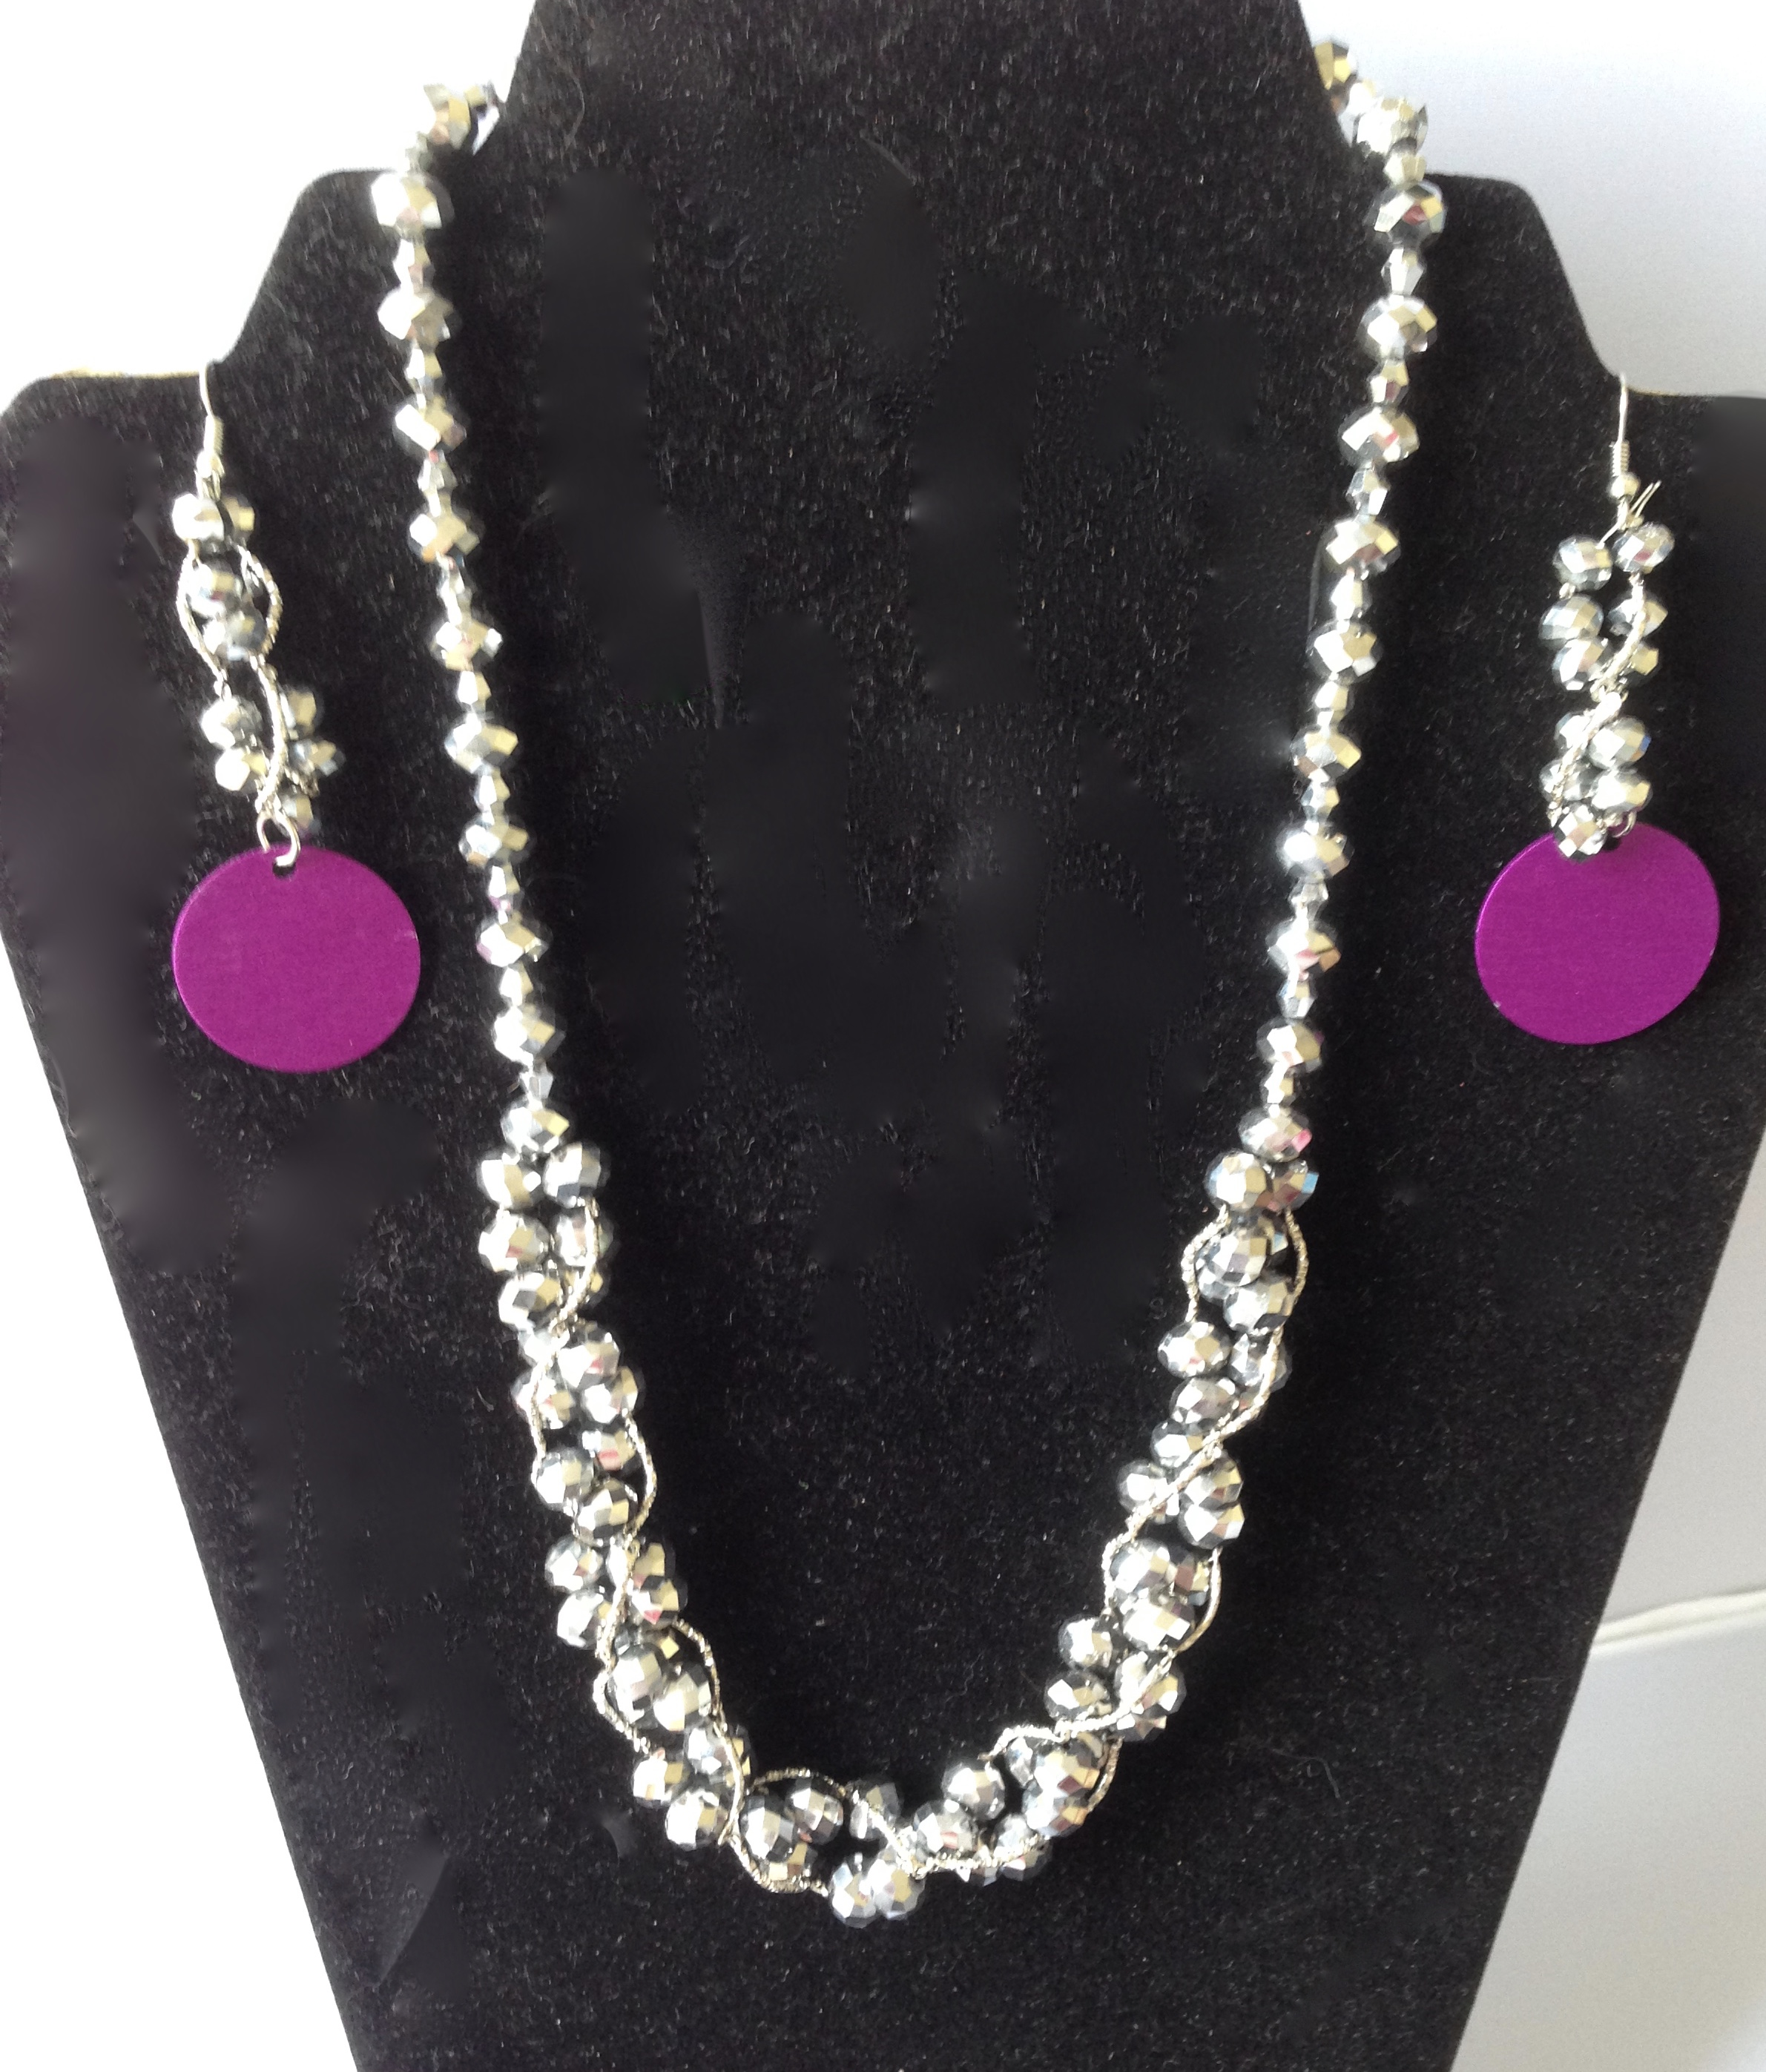 Silver Bead Necklace and Earrings Set